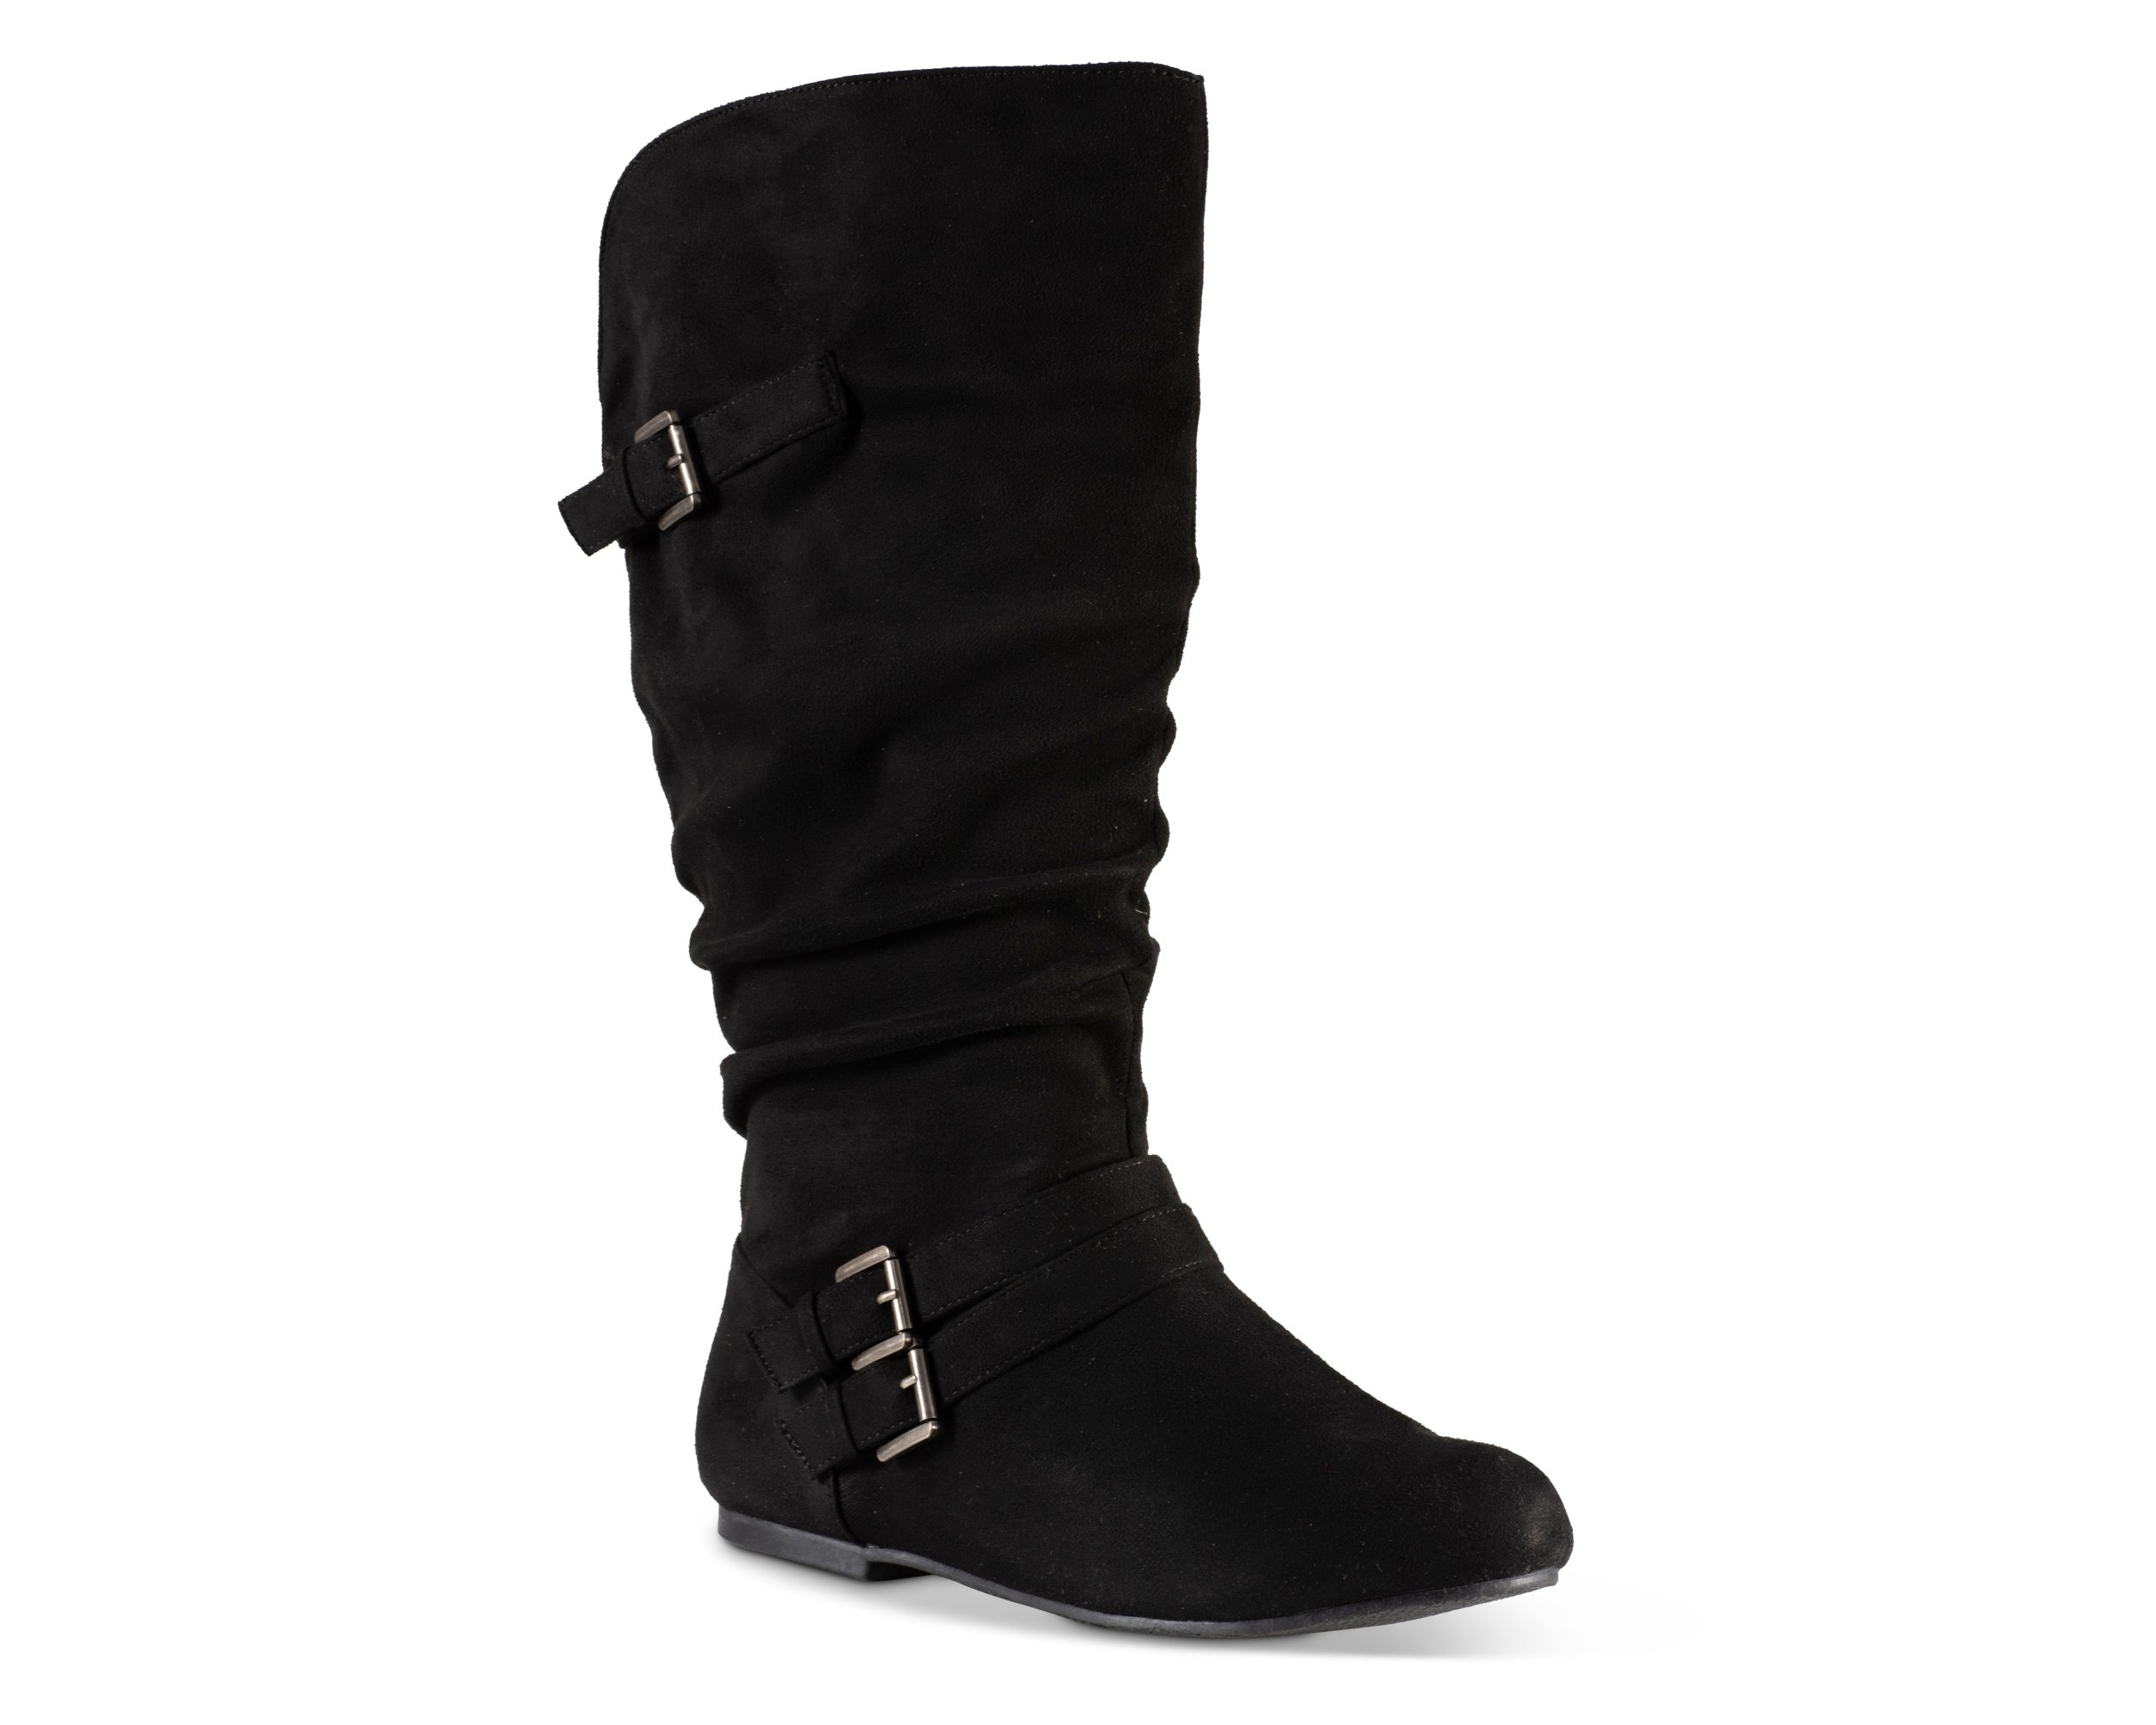 Twisted Women's Shelly Wide Width/Wide Calf Faux Leather Knee-High Scrunch Buckle Strap Riding Boot - Black Suede, Size 11